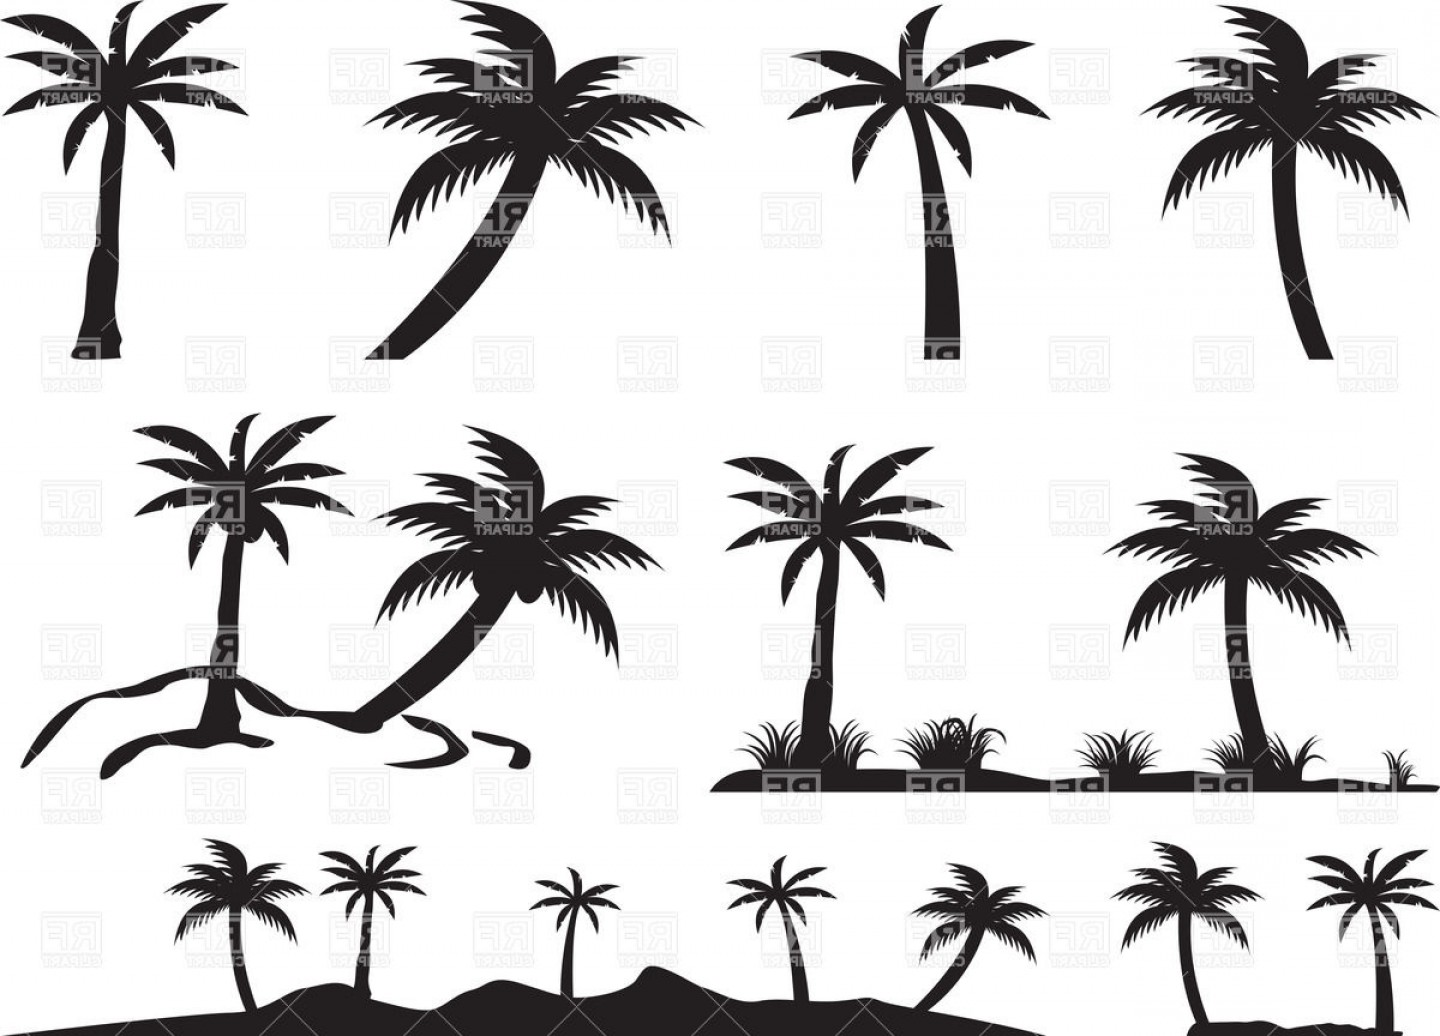 Tree Silhouette Vector Clip Art: Silhouettes Of Palm Trees And Islands Vector Clipart